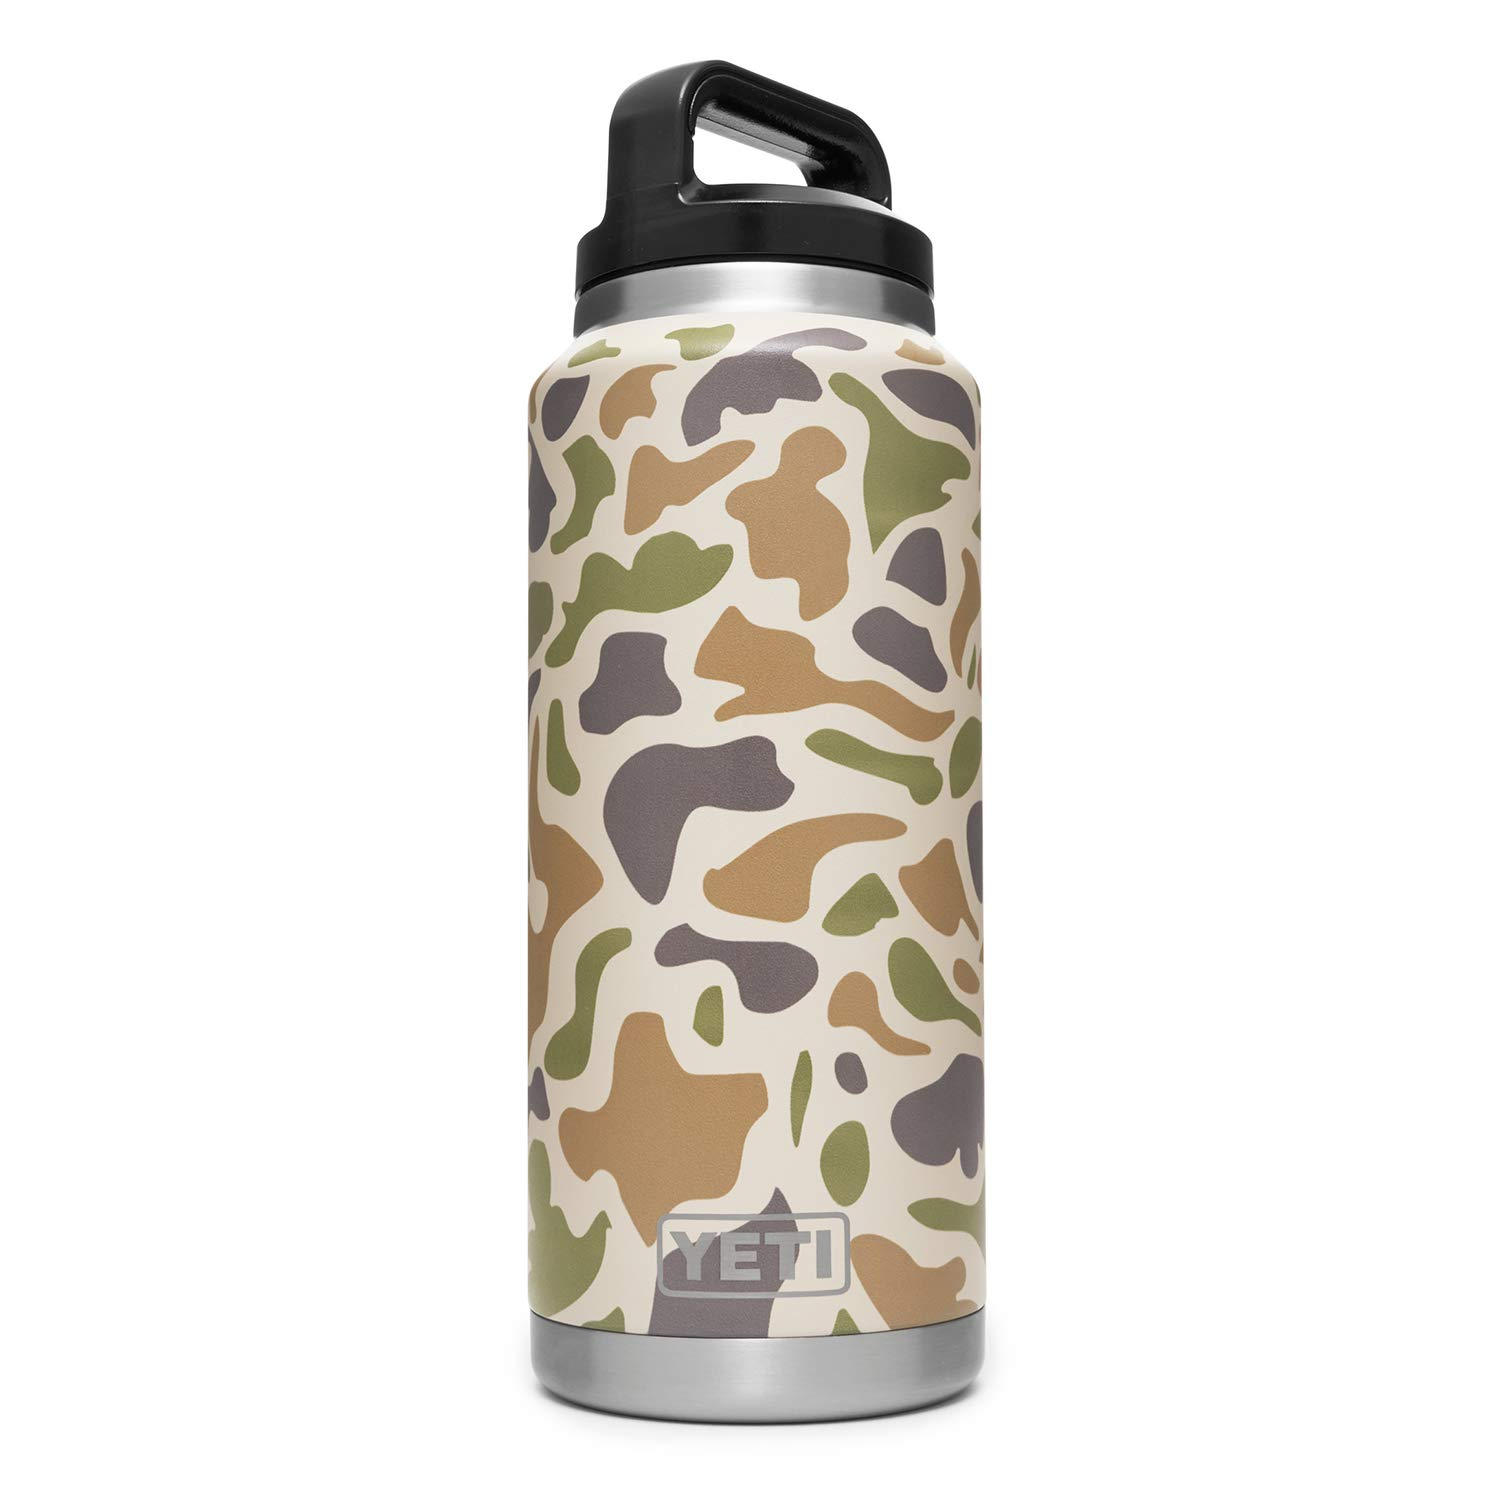 YETI Rambler 36 oz Vacuum Insulated Stainless Steel Bottle with Cap, Camo by YETI